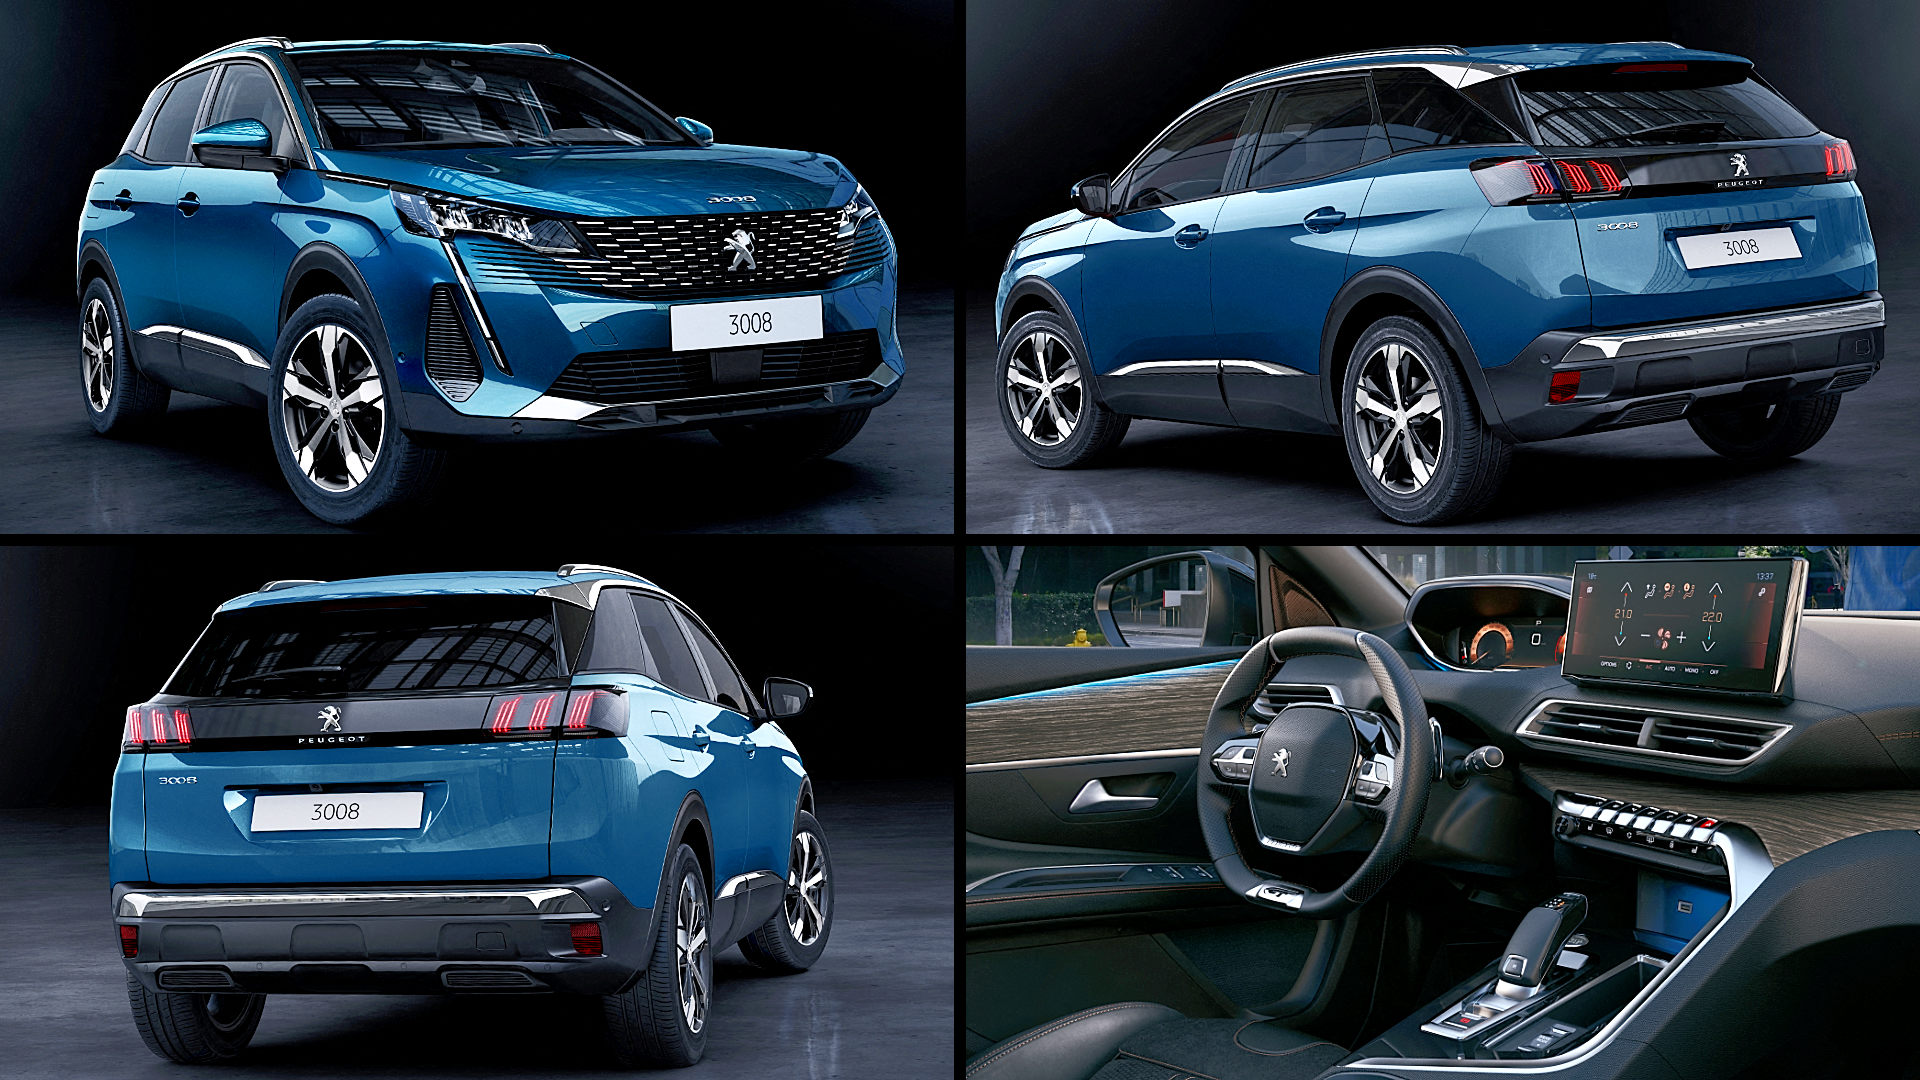 2021 Peugeot SUV 3008 Images